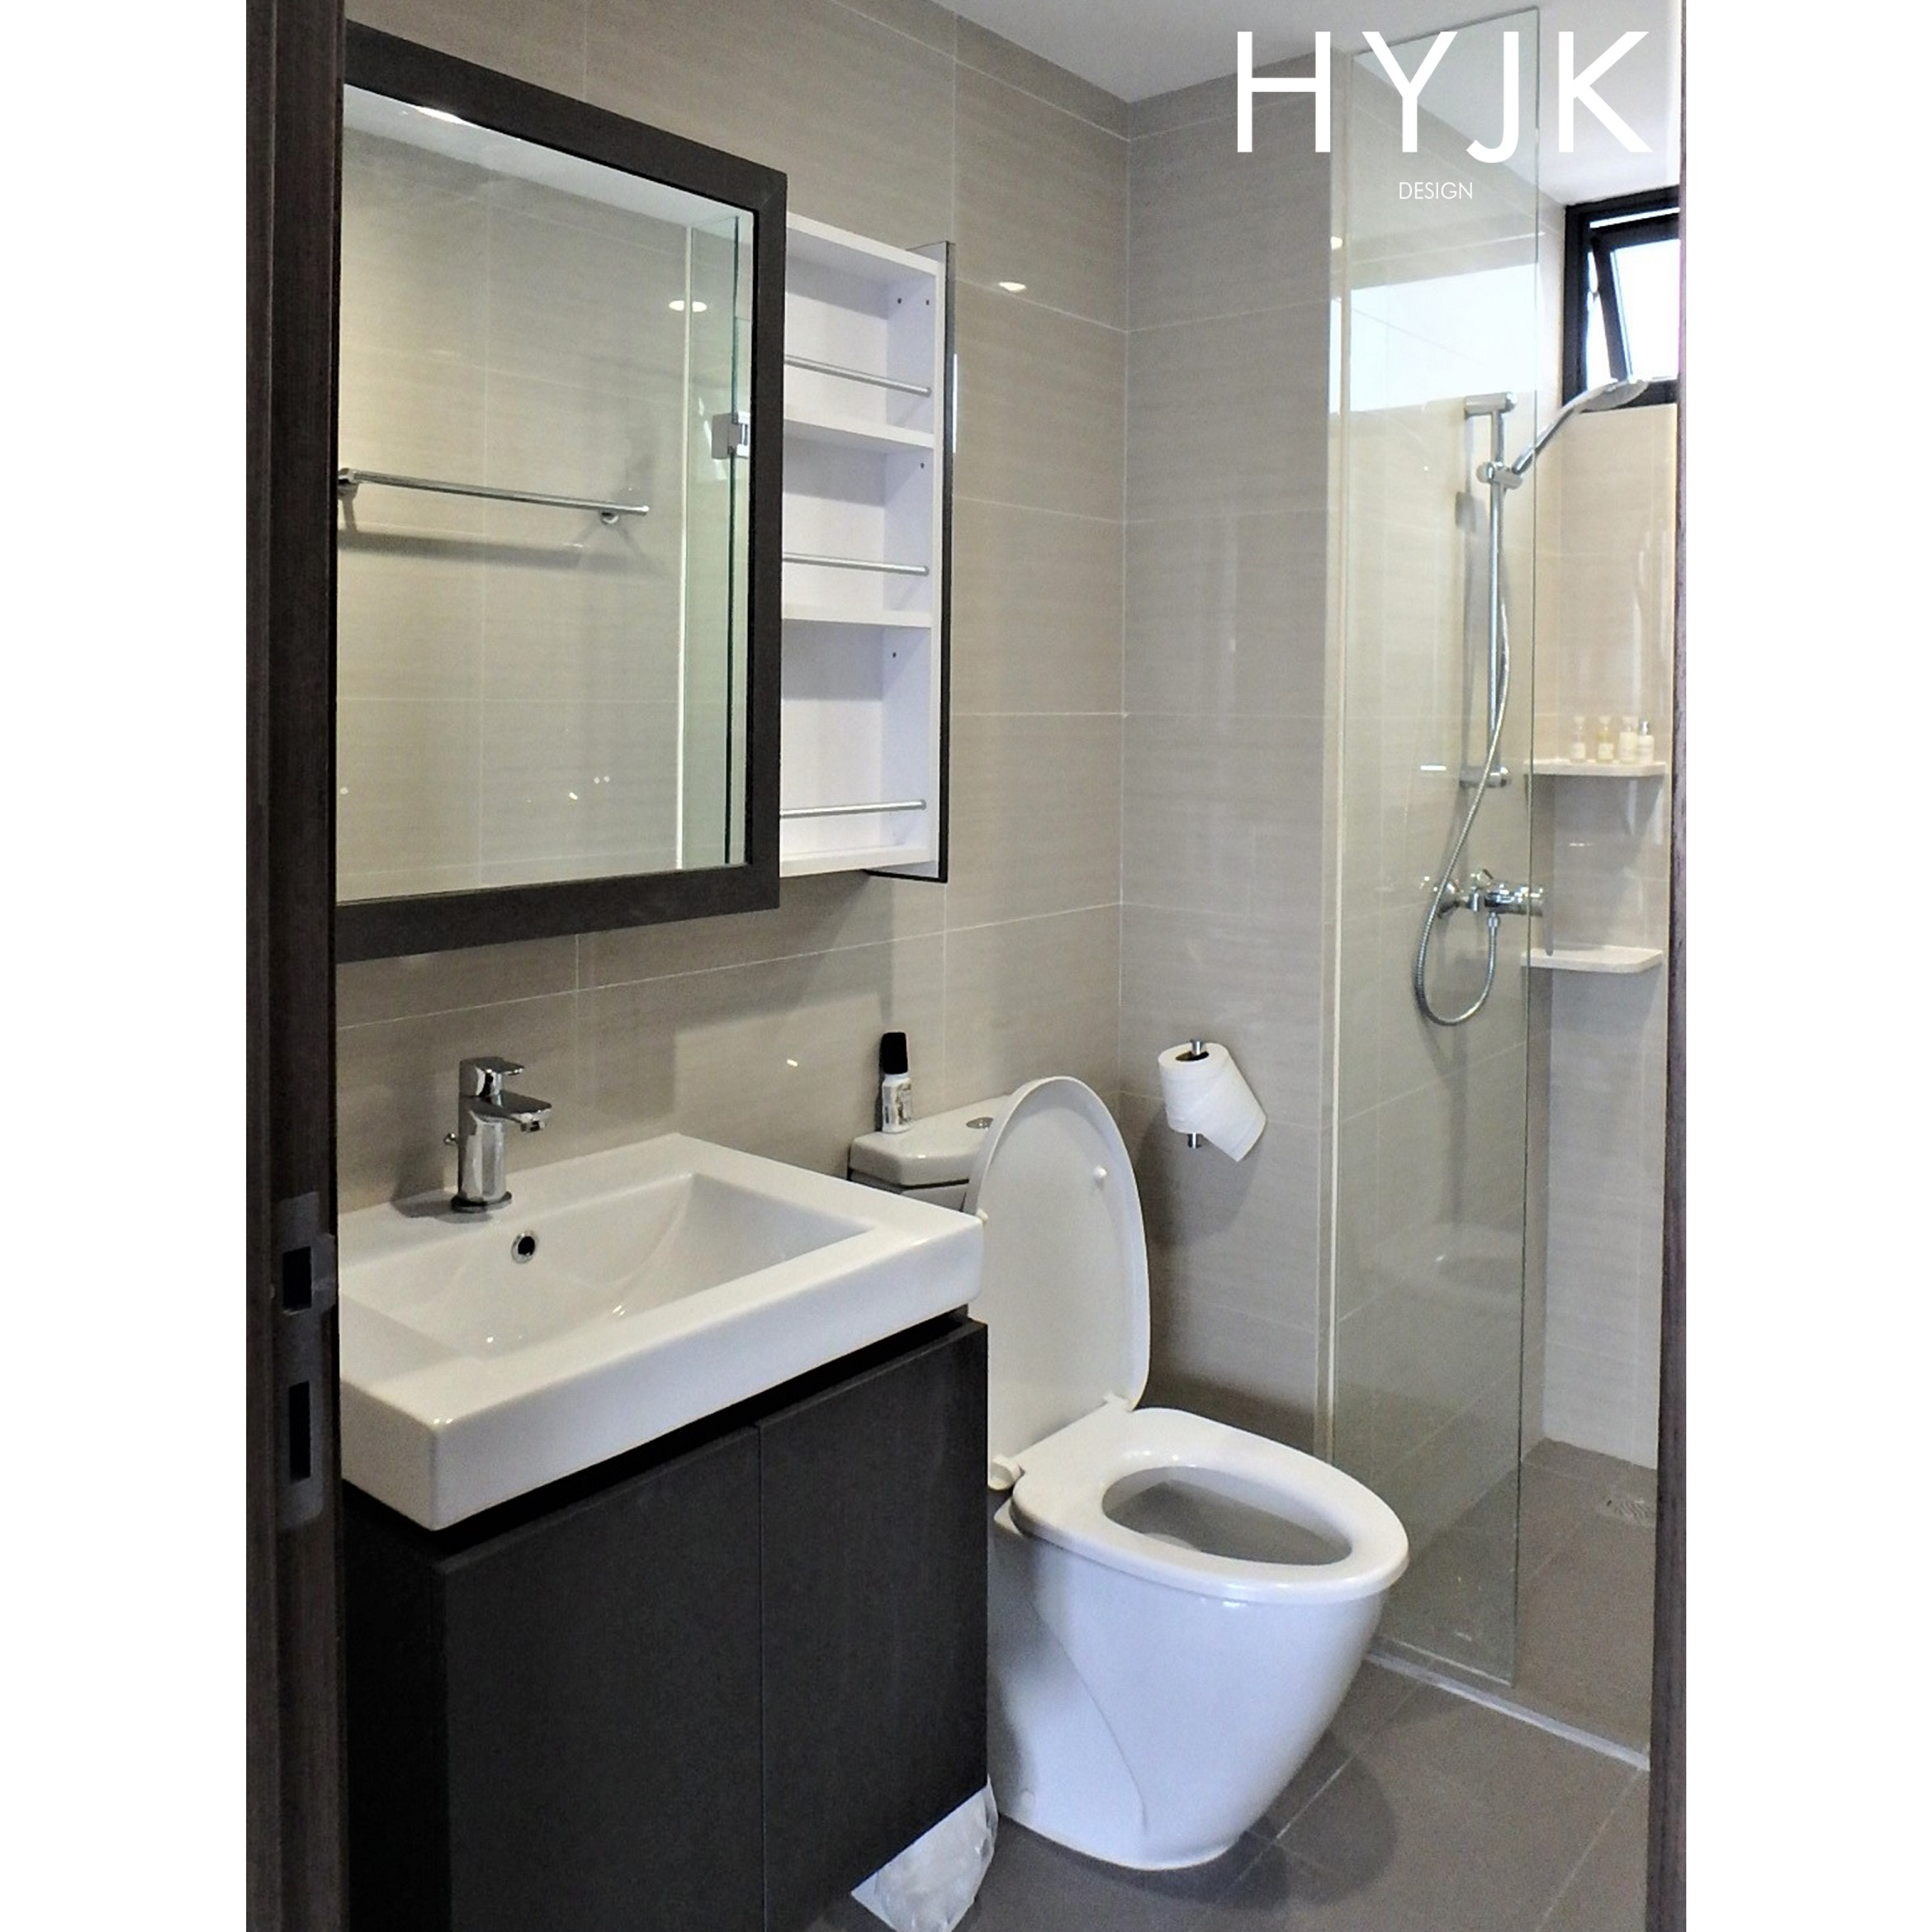 Retractable shelving allowing access to cosmetics and grooming accessories while using the mirror.